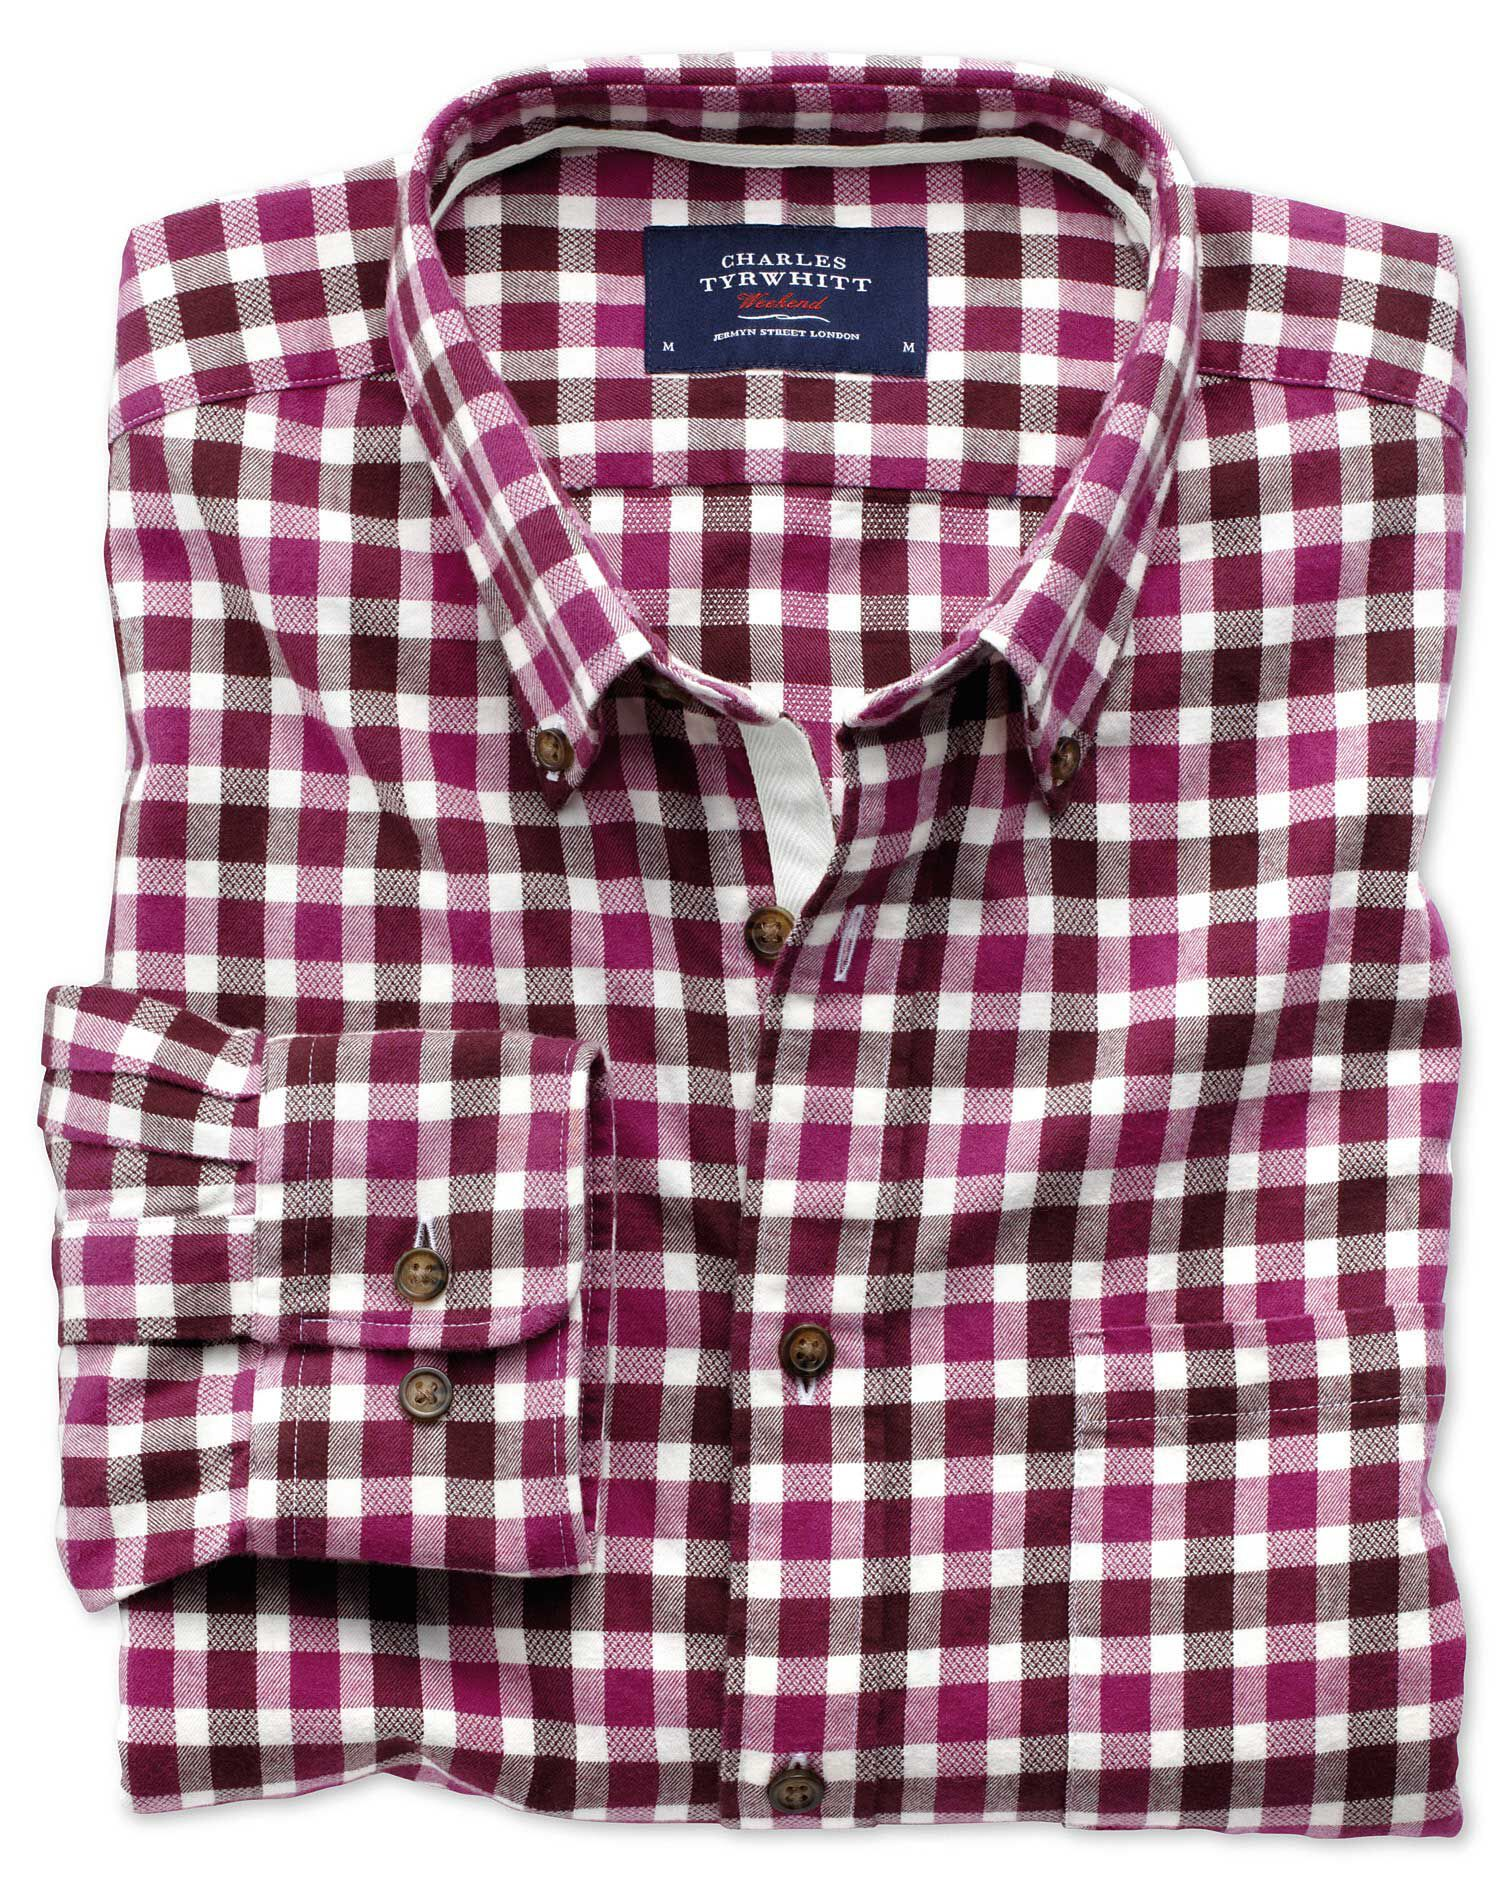 Extra Slim Fit Berry Check Brushed Dobby Cotton Shirt Single Cuff Size Medium by Charles Tyrwhitt